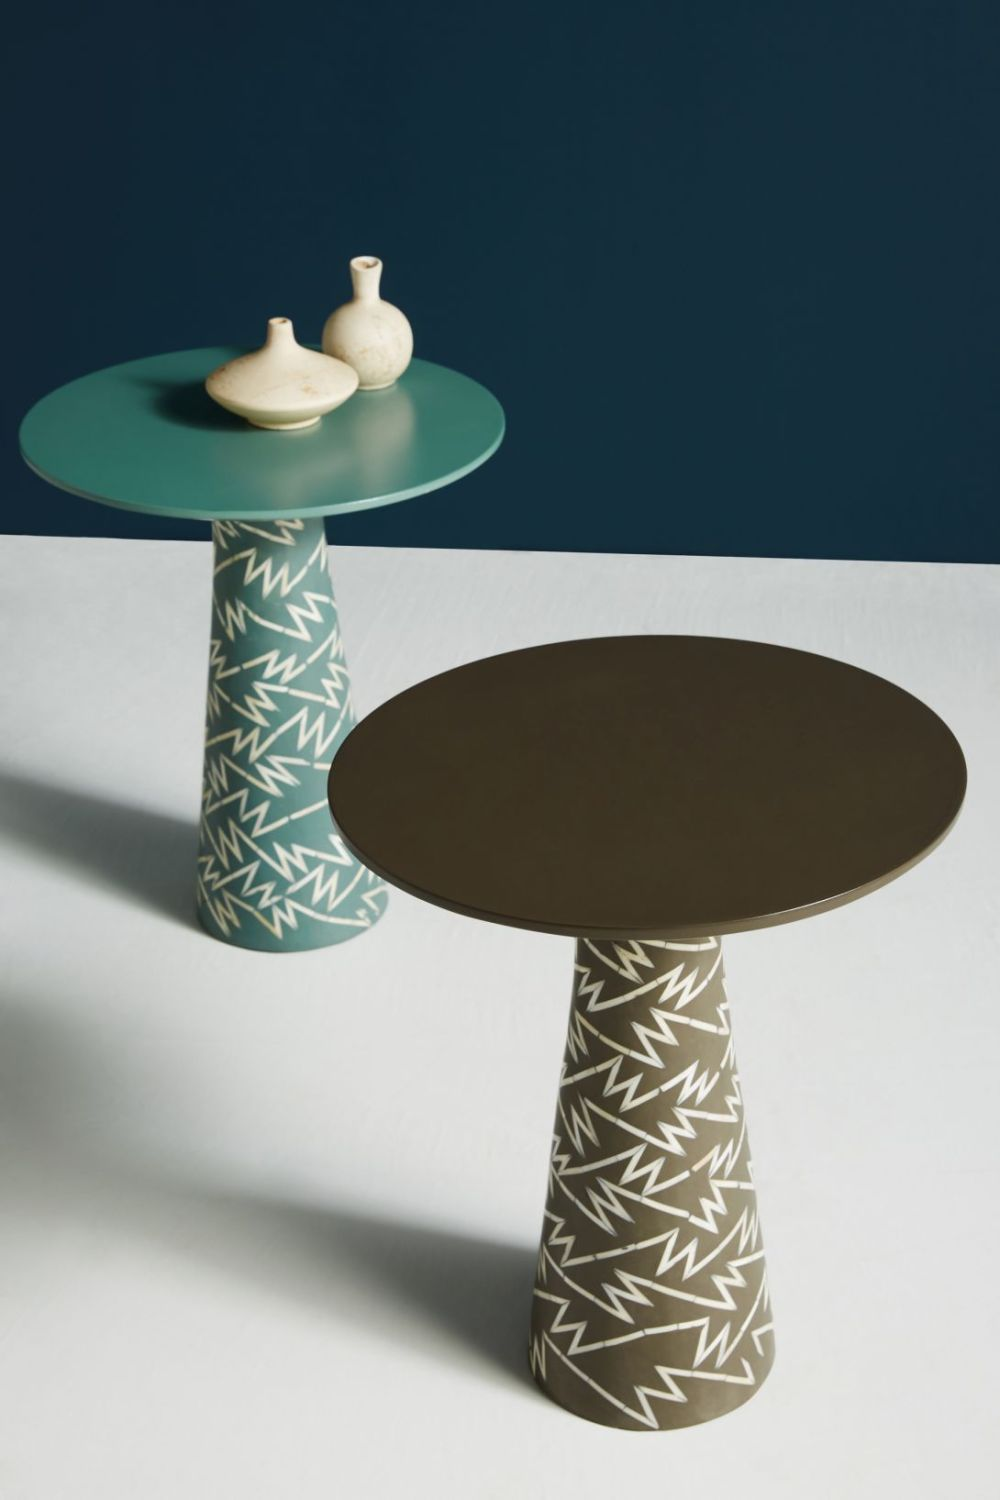 Anthropologie will be dropping a dreamy collection of furniture that have been designed by Bethan Gray this September. Welsh artist, Bethan Gray, is used to taking a hint from other cultures. Gray's previous collections have looked to the Islamic world and the architecture of Oman for inspiration. This September, her latest partner Anthropologie are releasing a new collection for which Gray was inspired by ancient Native American cultures, and it couldn't be more on trend! With a soft millennial palette of blush pink and mint green with marble, brass and velvet accents, the collection is an excellent fit with Anthropologie's stunning Instagram-friendly aesthetic.